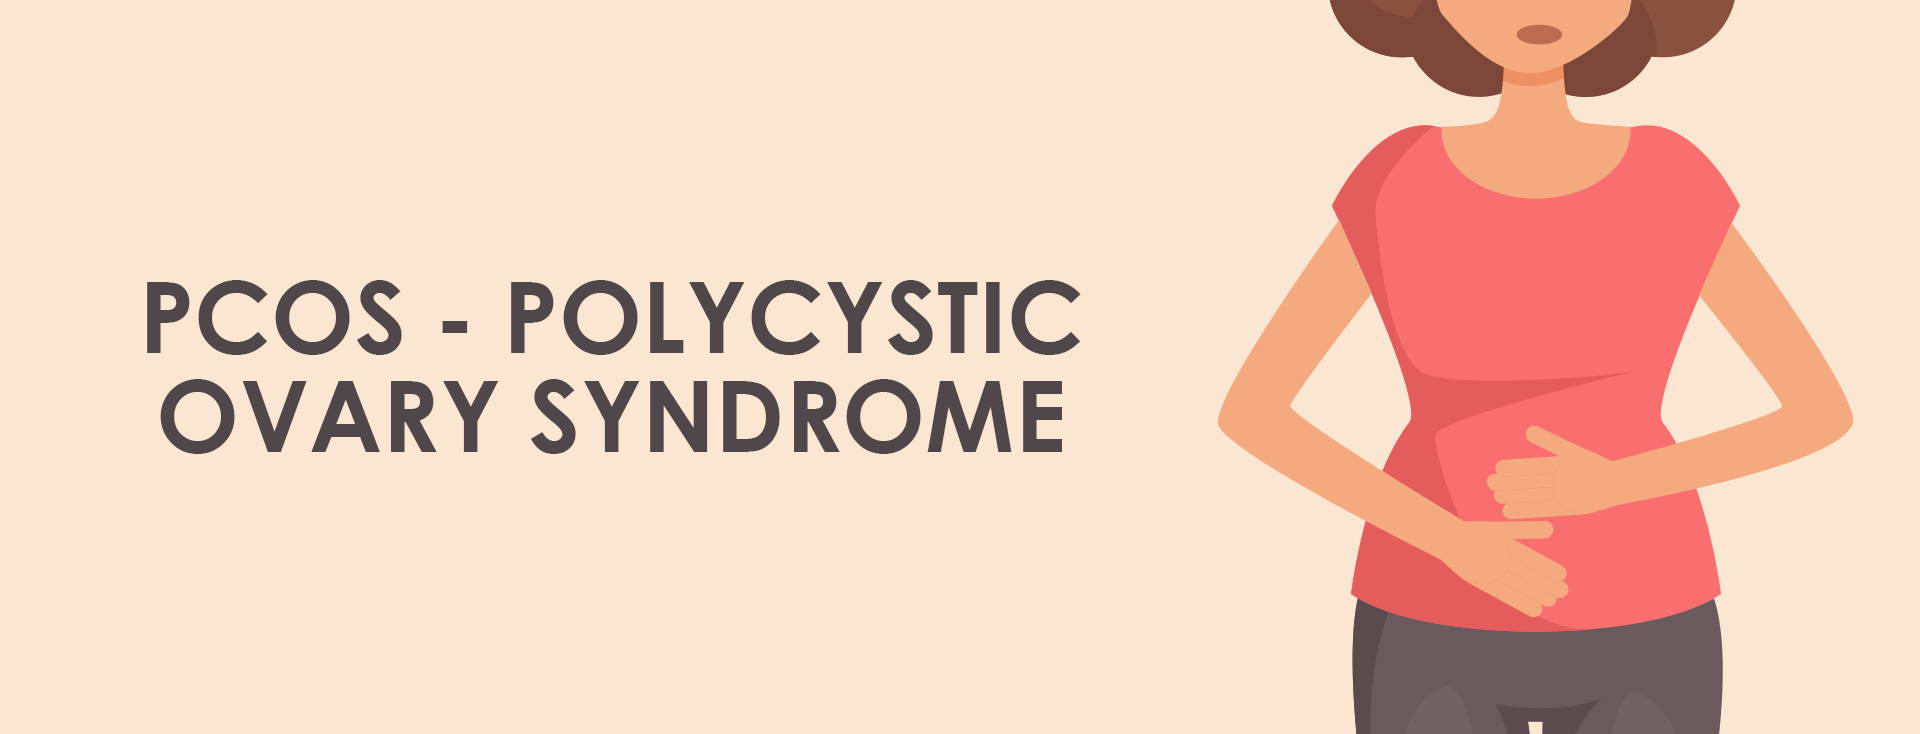 PCOS PCOD Polycystic Ovary Syndrome